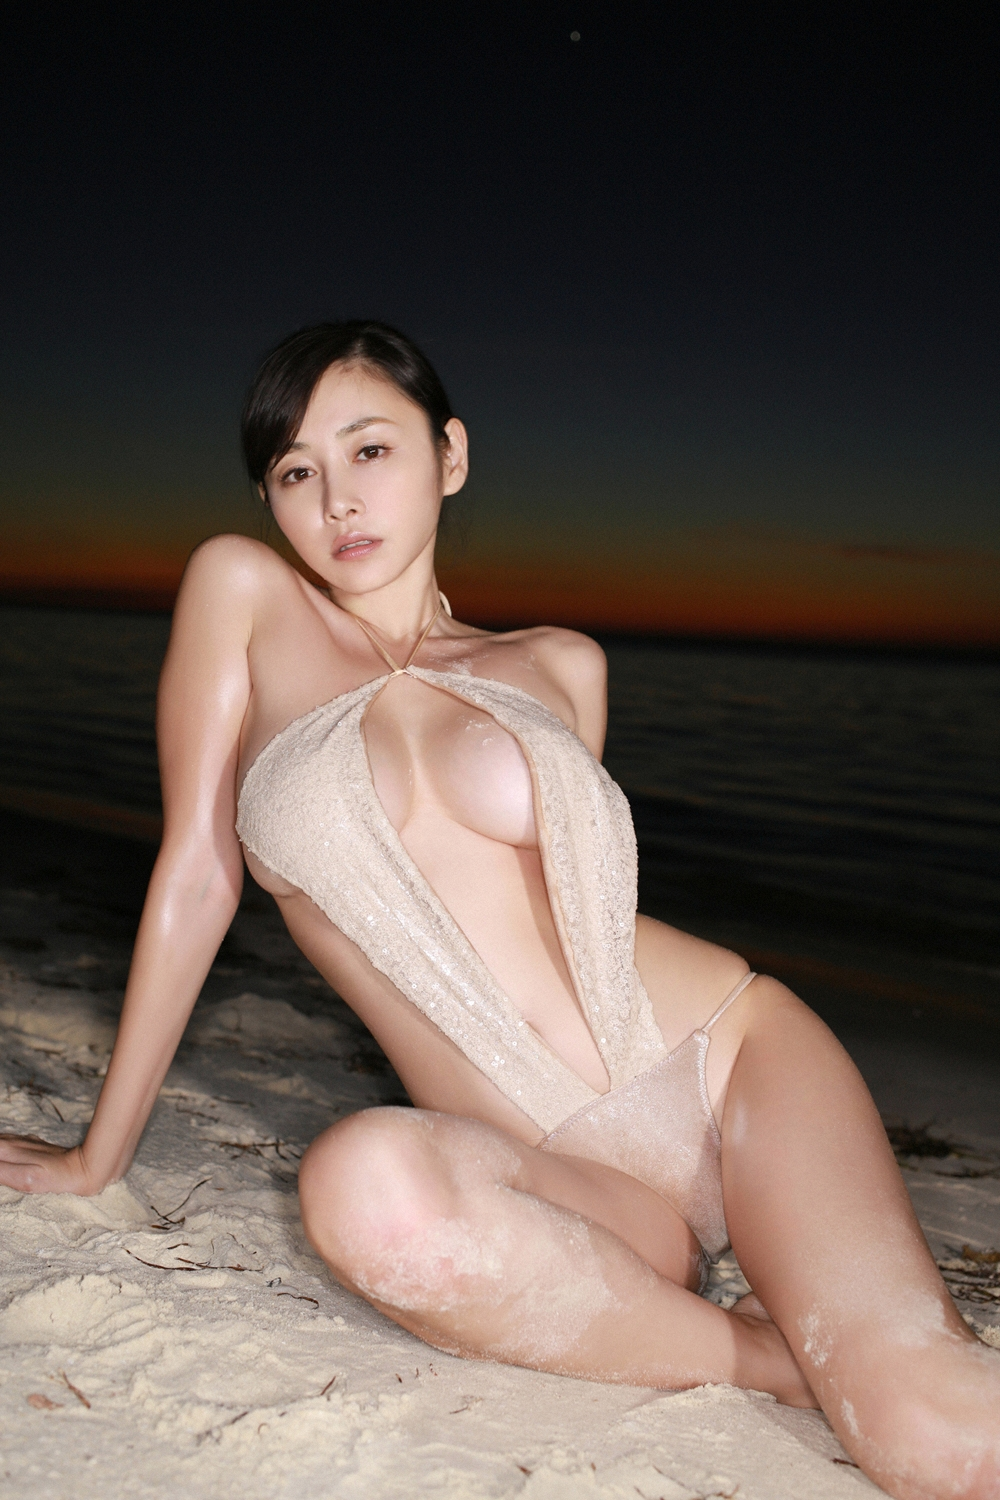 杉原杏璃 Anri Sugihara YS Web Vol 655 Pictures 71